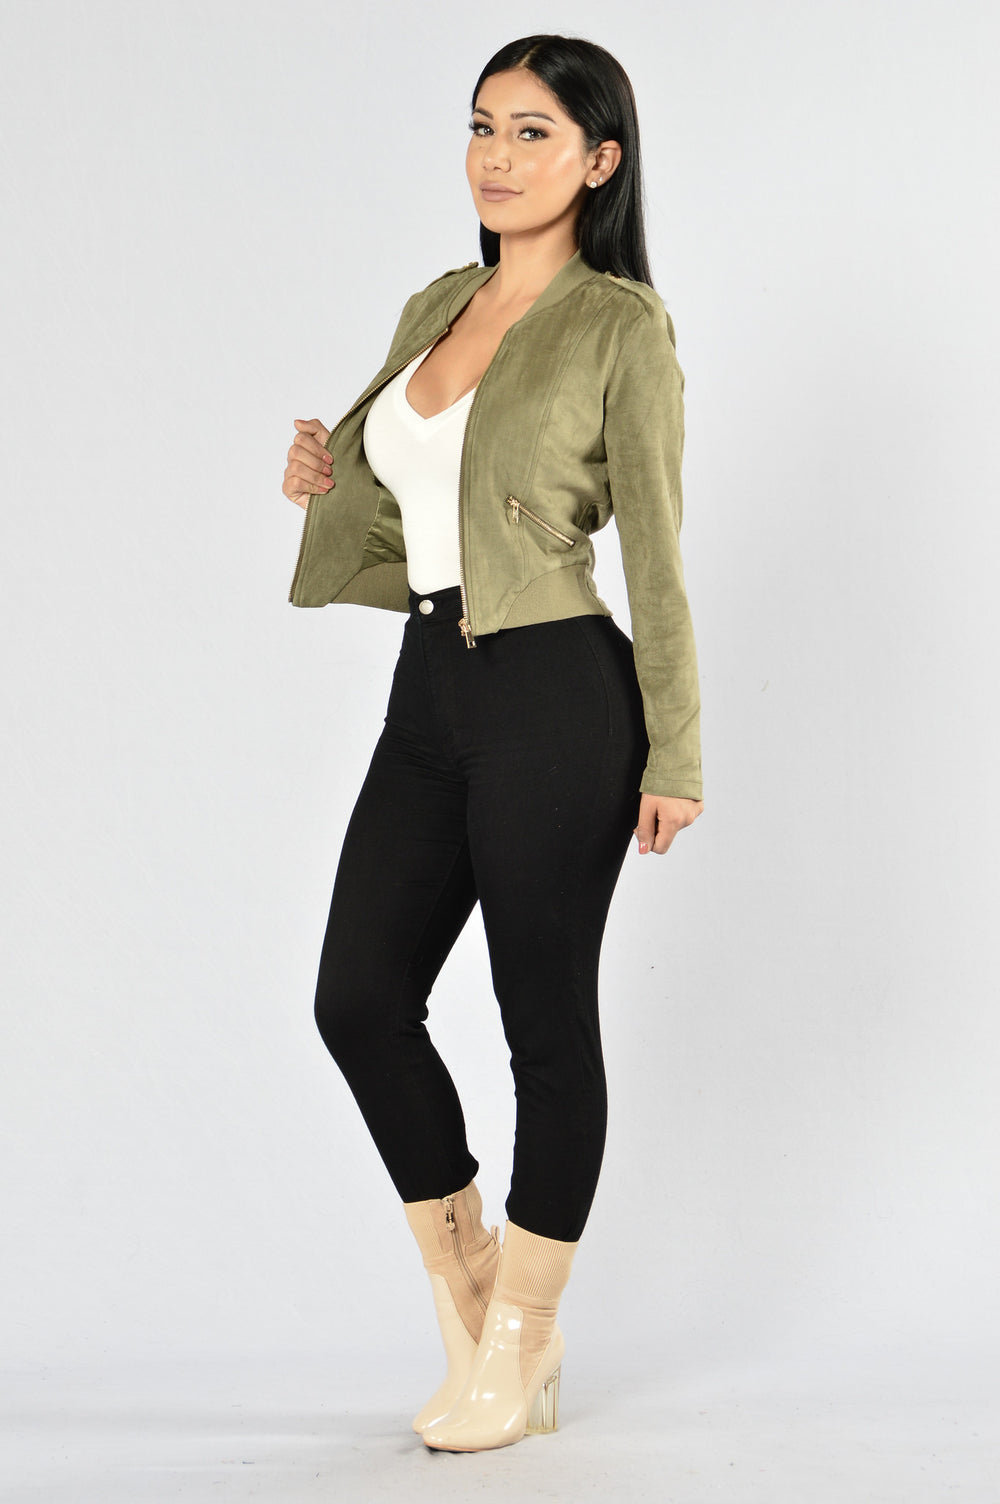 King of Pop Jacket - Olive